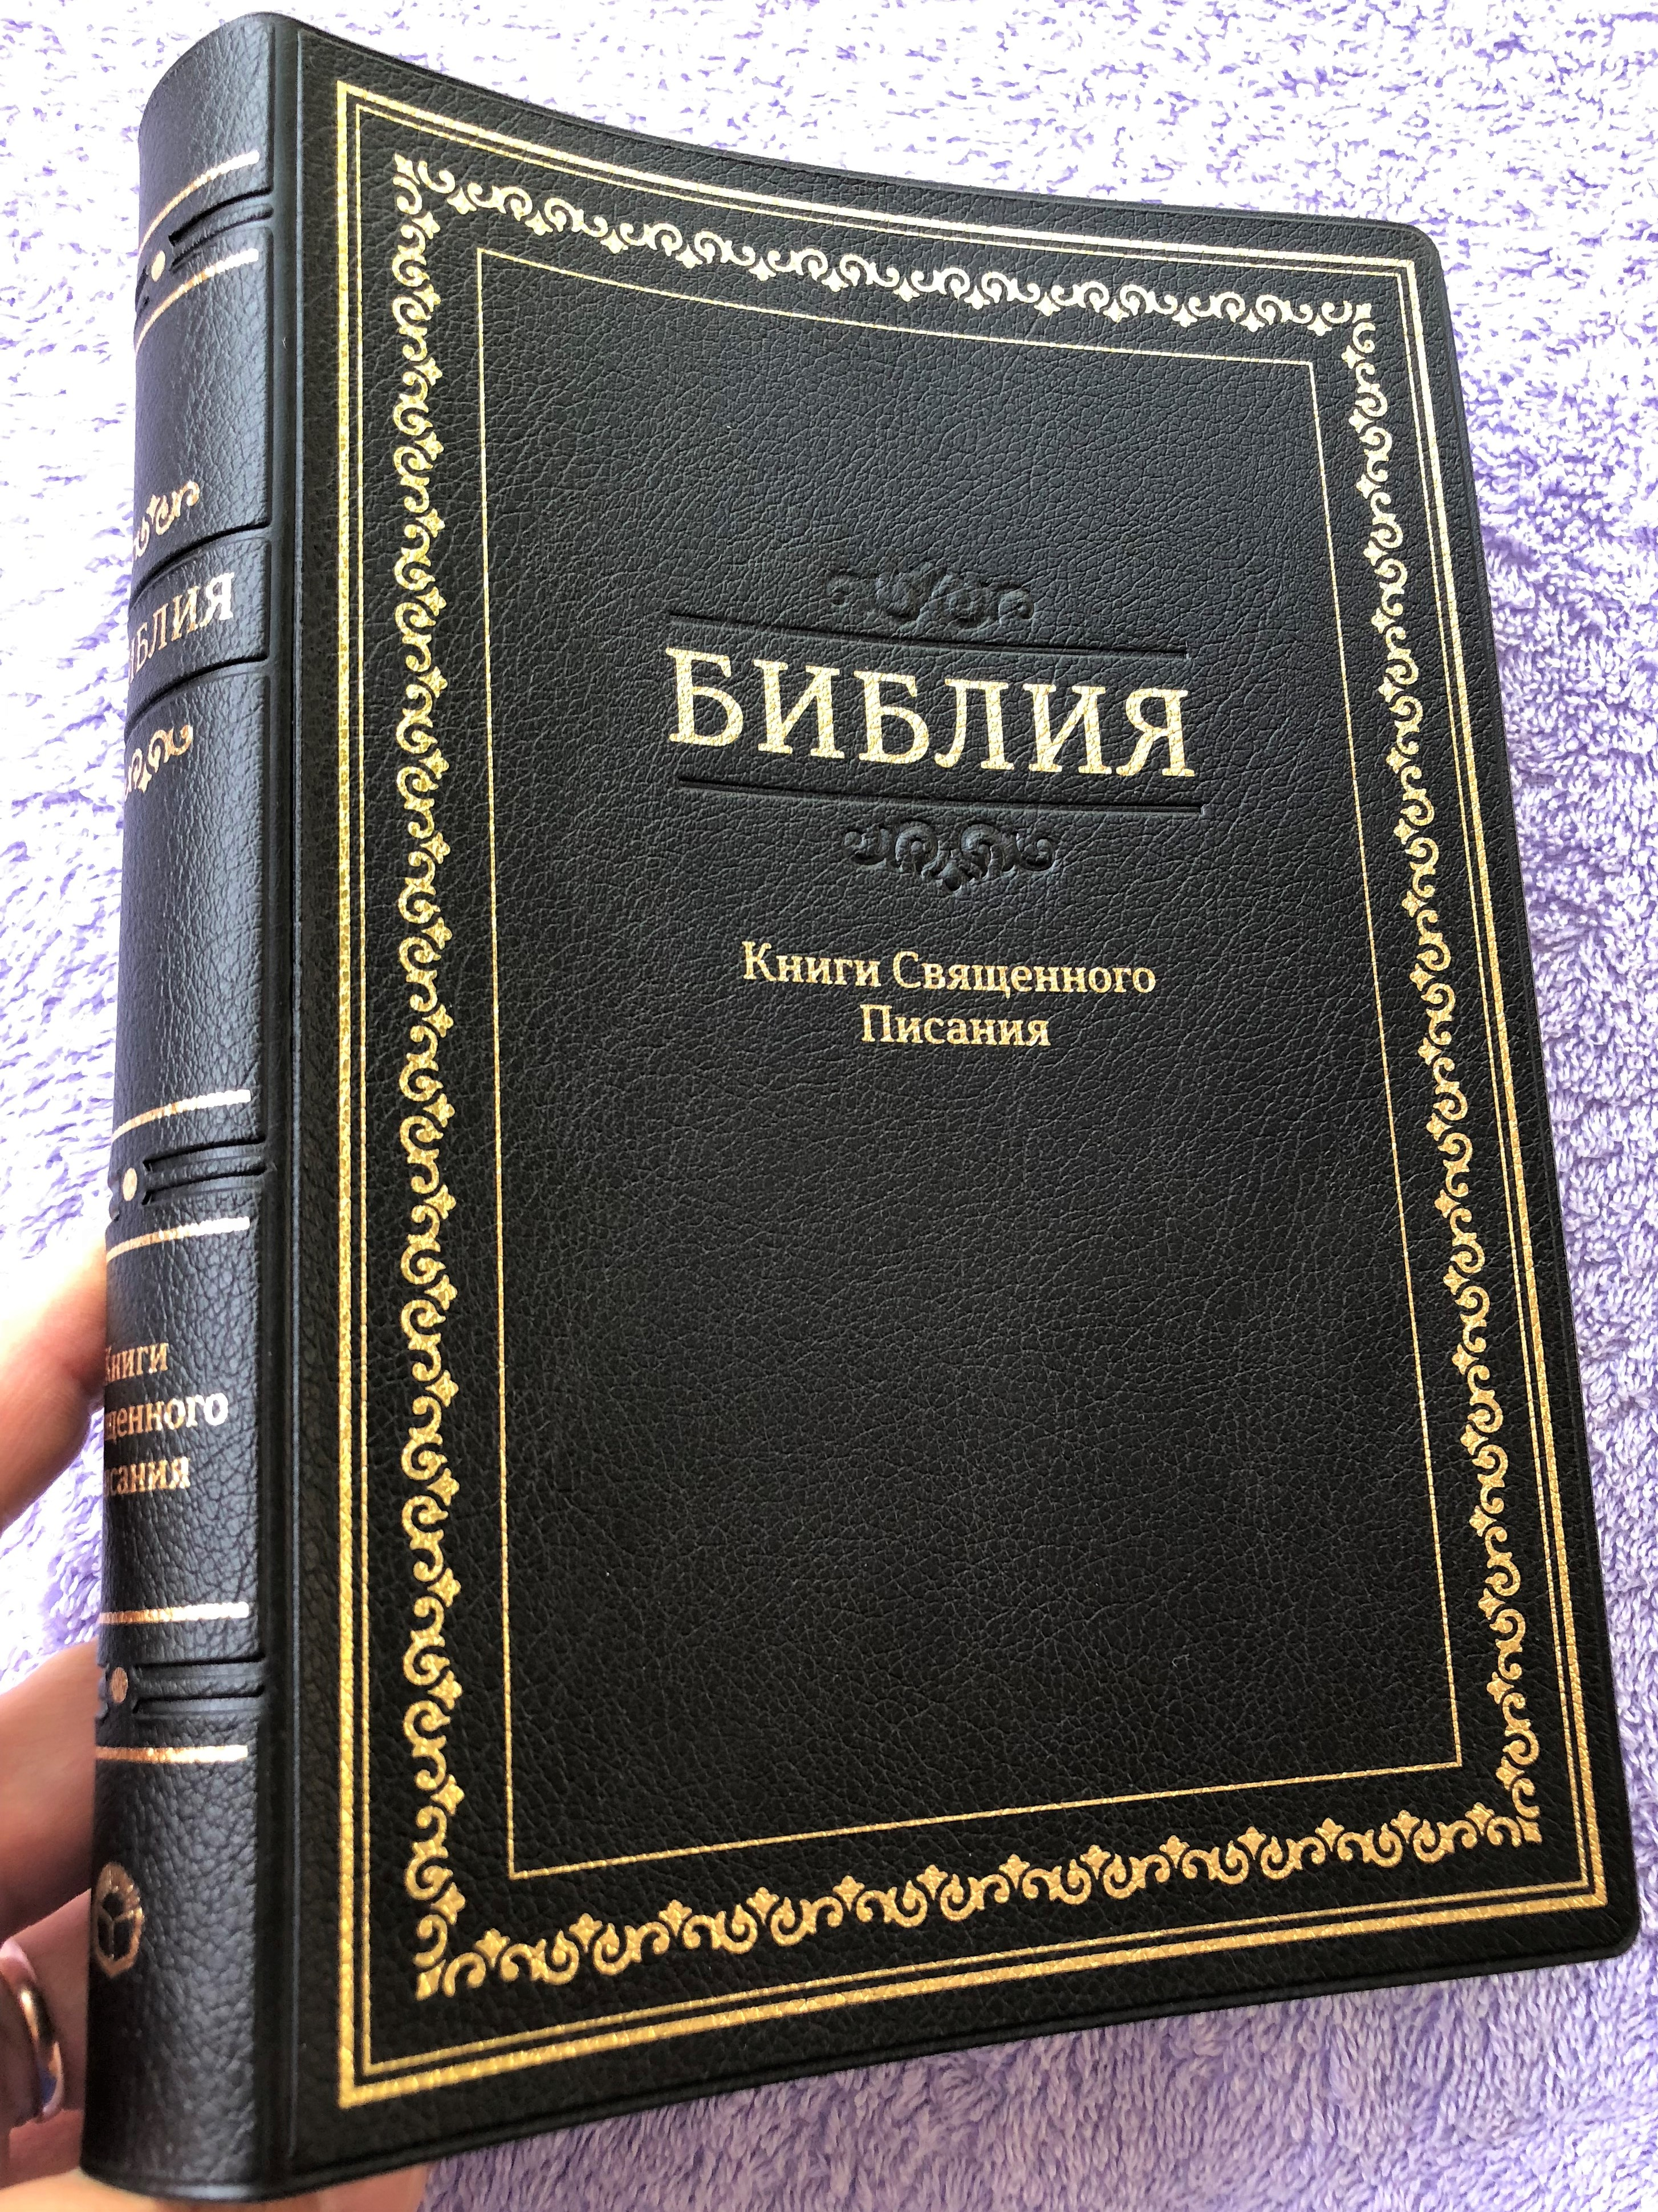 russian-bible-beautifully-designed-cover-black-vinyl-bound-with-column-references-2-.jpg